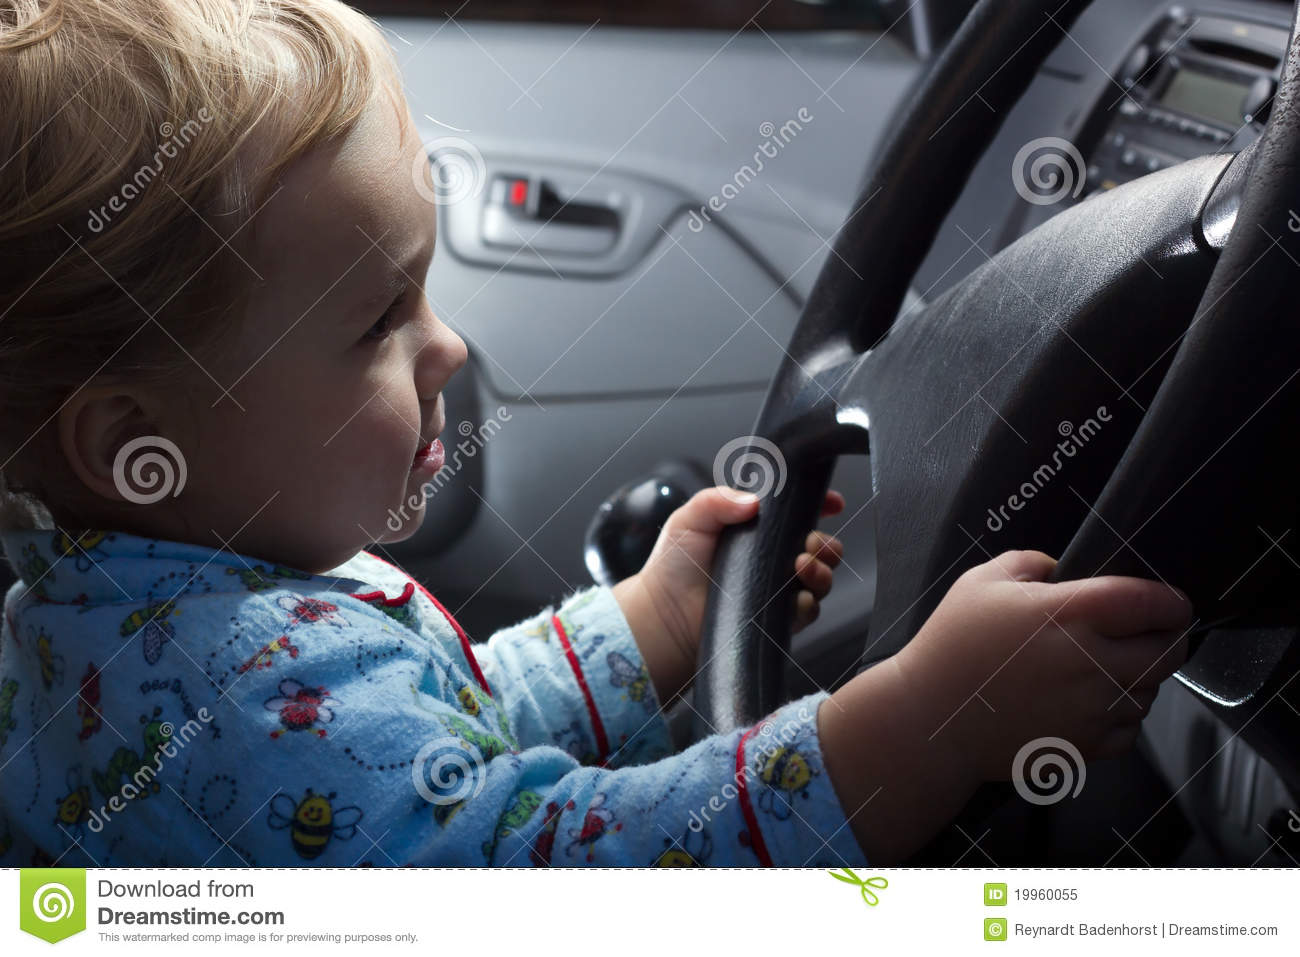 Behind The Steering Wheel : Baby boy behind the steering wheel royalty free stock